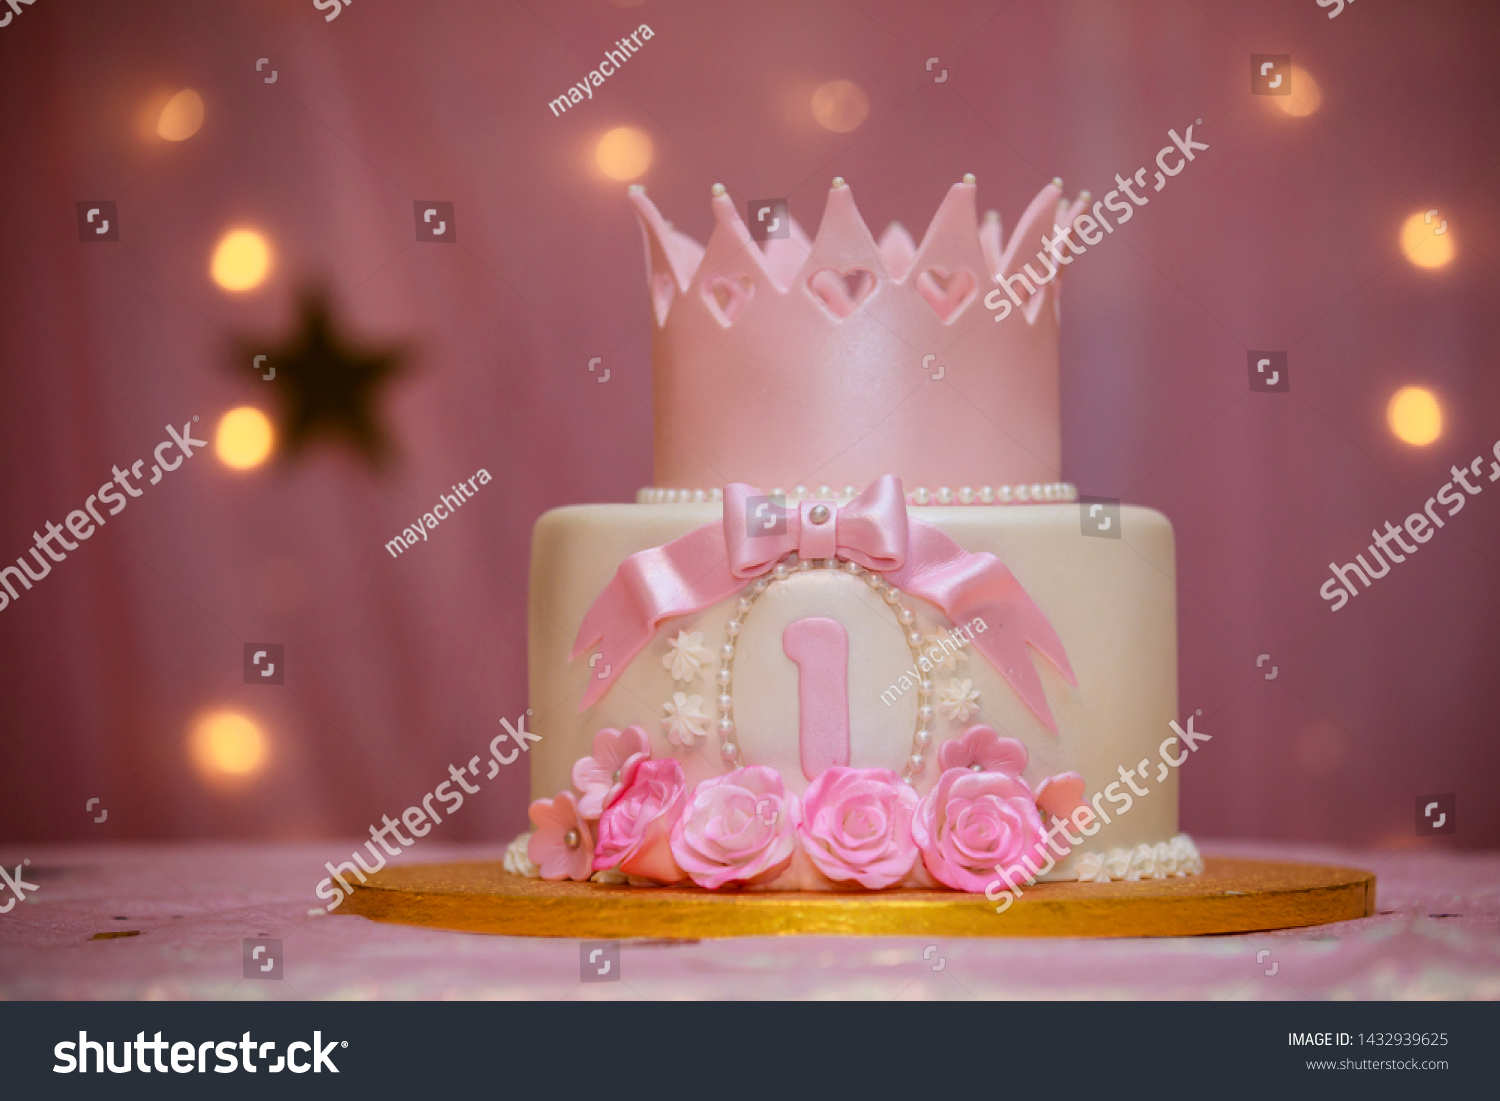 Stupendous First Birthday Cake Pink Colored One Stock Photo Edit Now 1432939625 Funny Birthday Cards Online Elaedamsfinfo